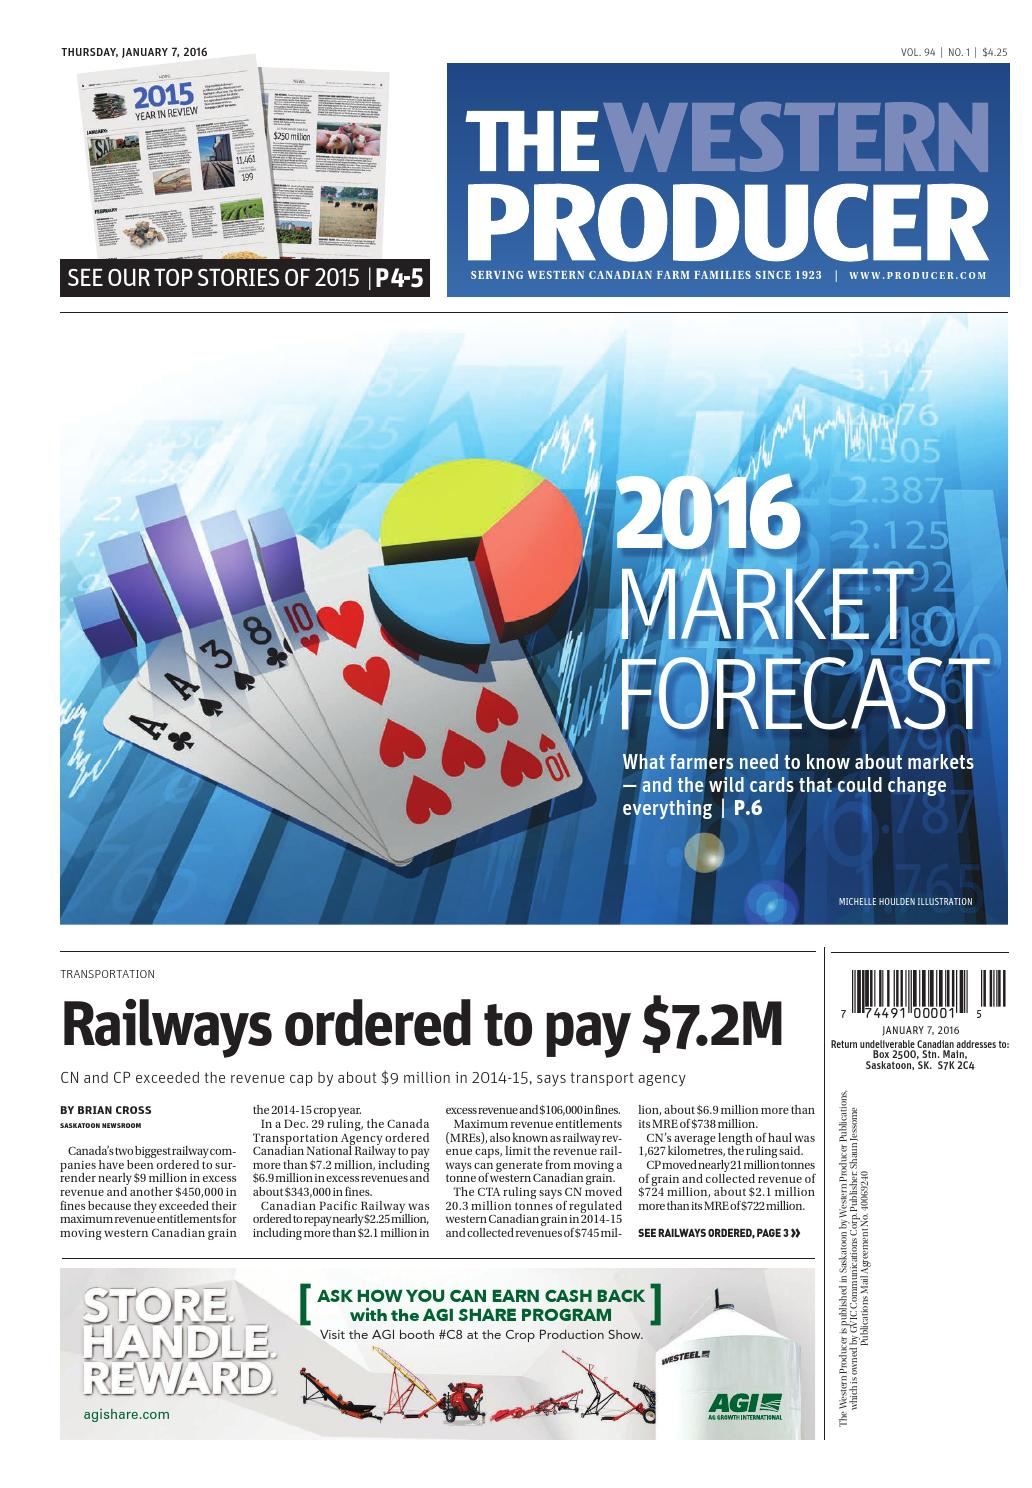 The western producer january 7, 2016 by The Western Producer - issuu